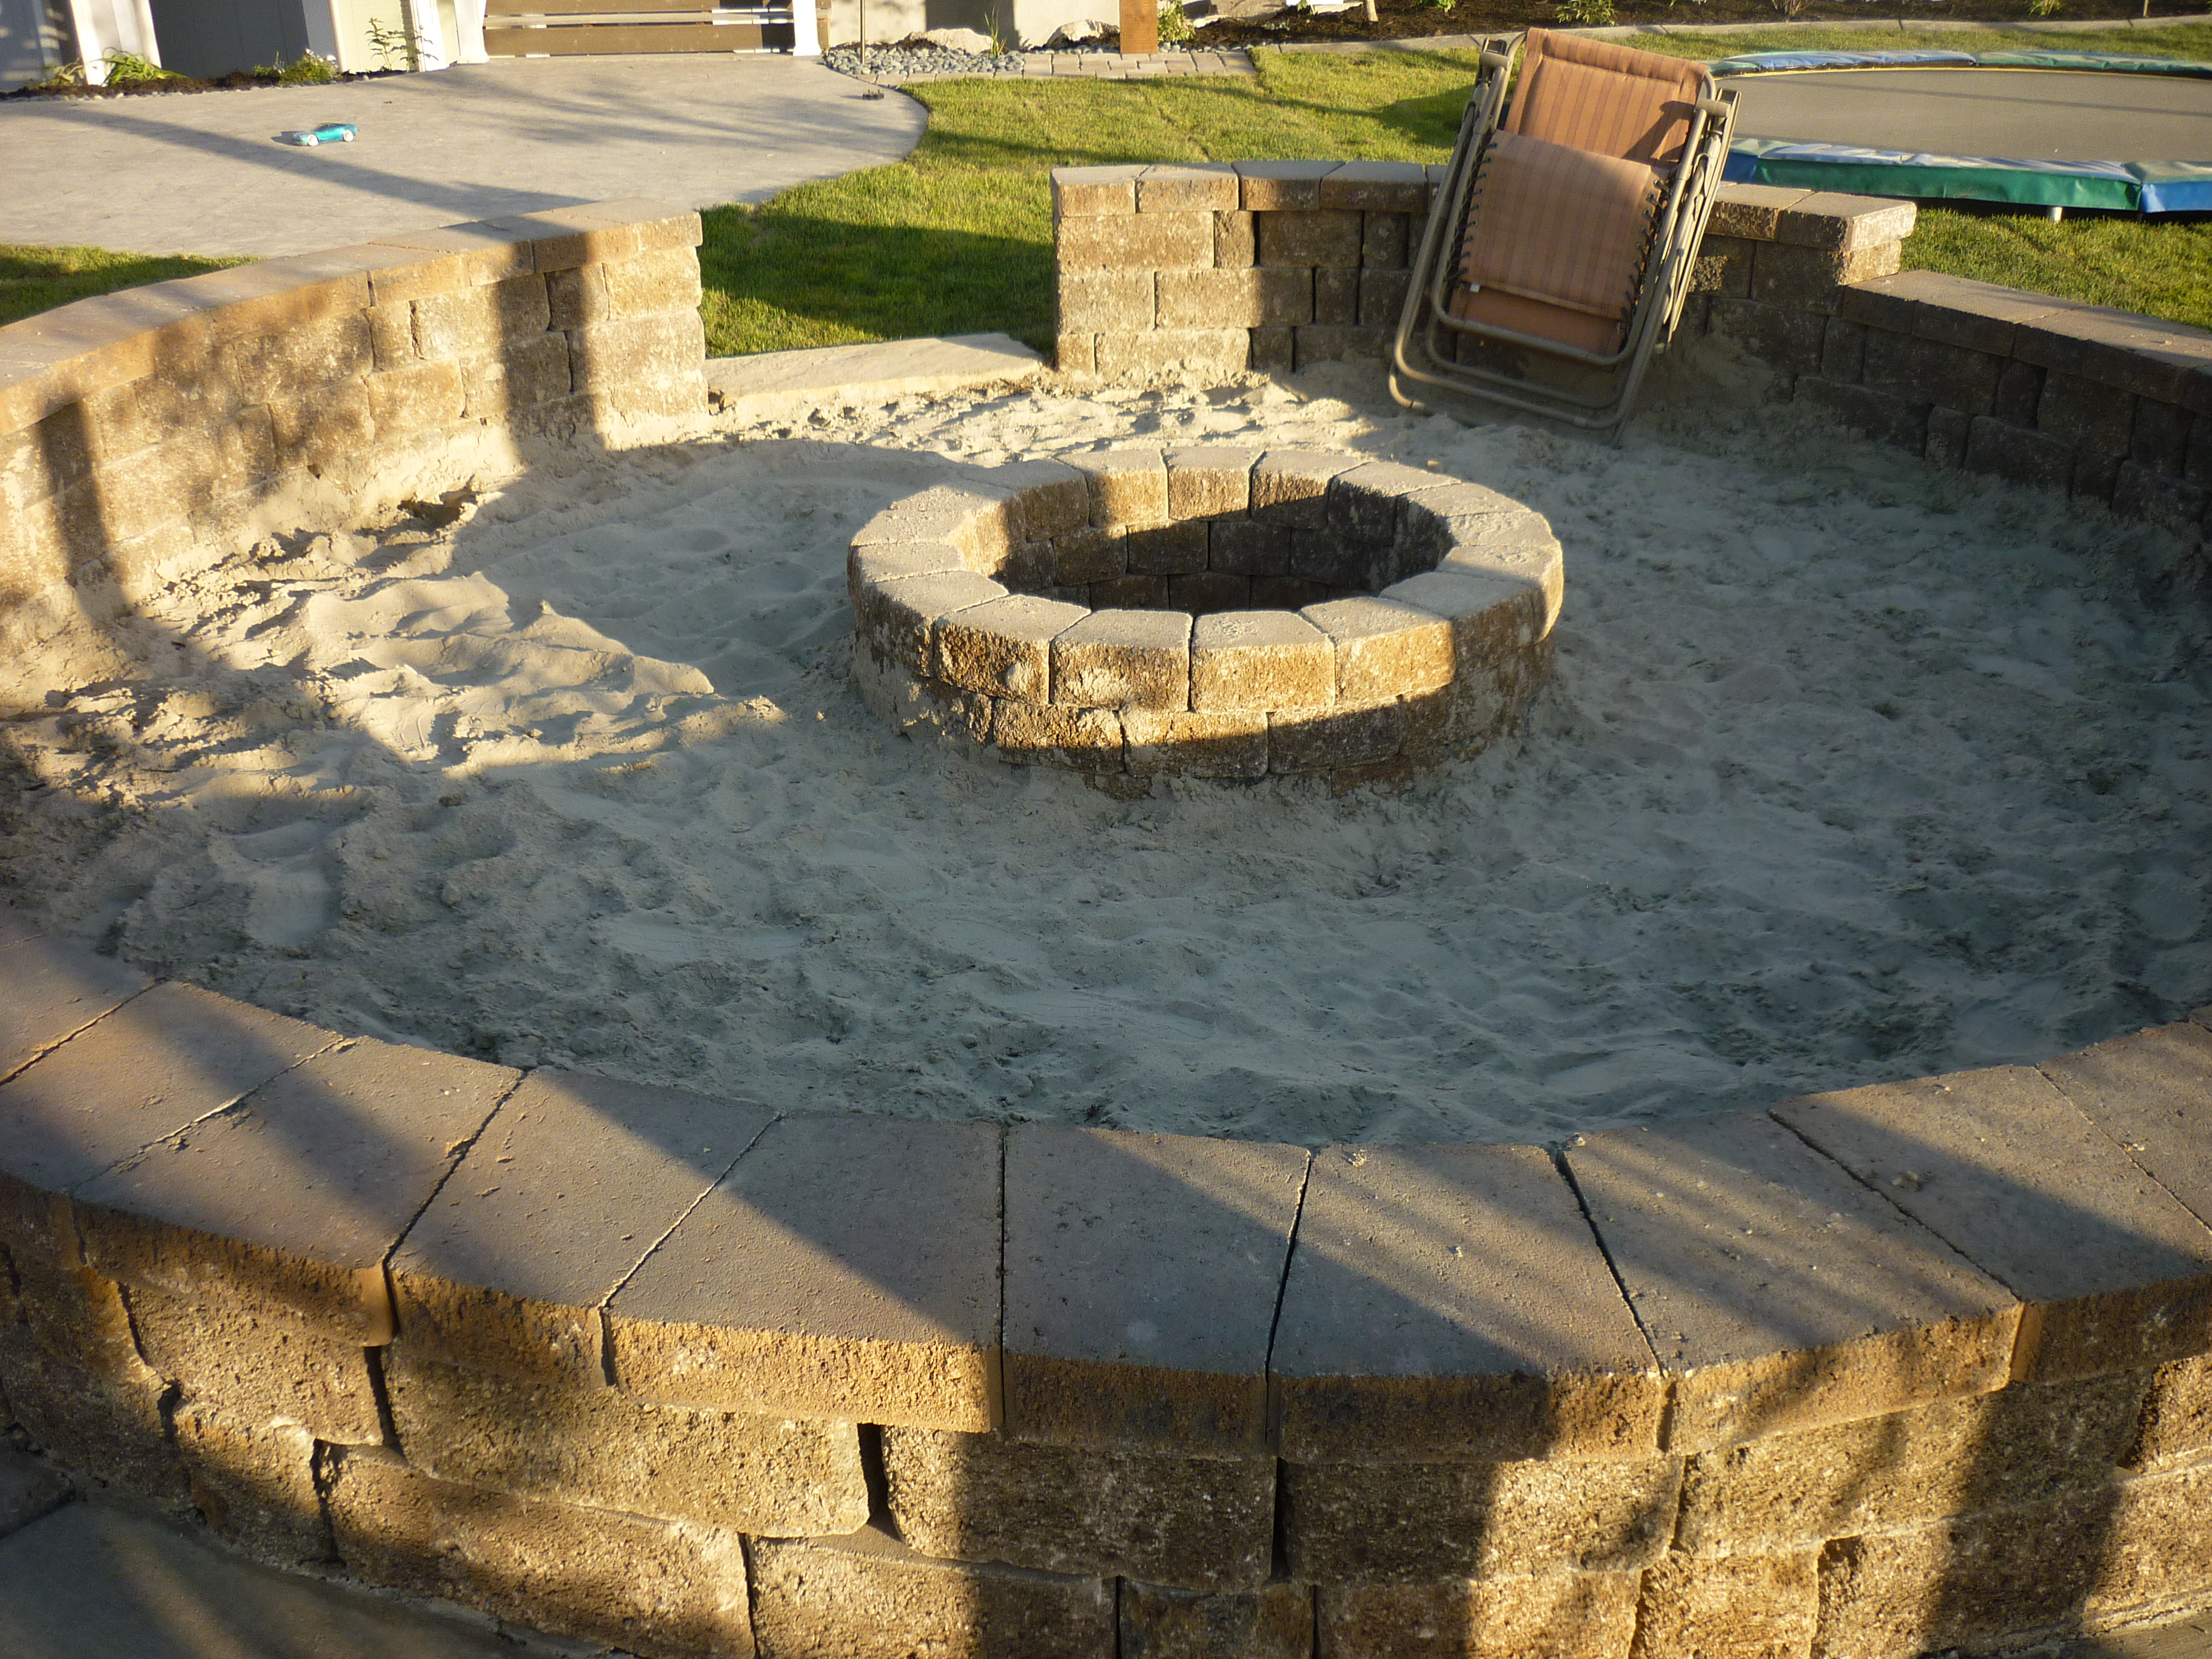 Backyard Sand Fire Pit : backyard Landscaping company for your Designs, Swimming pools, Fire